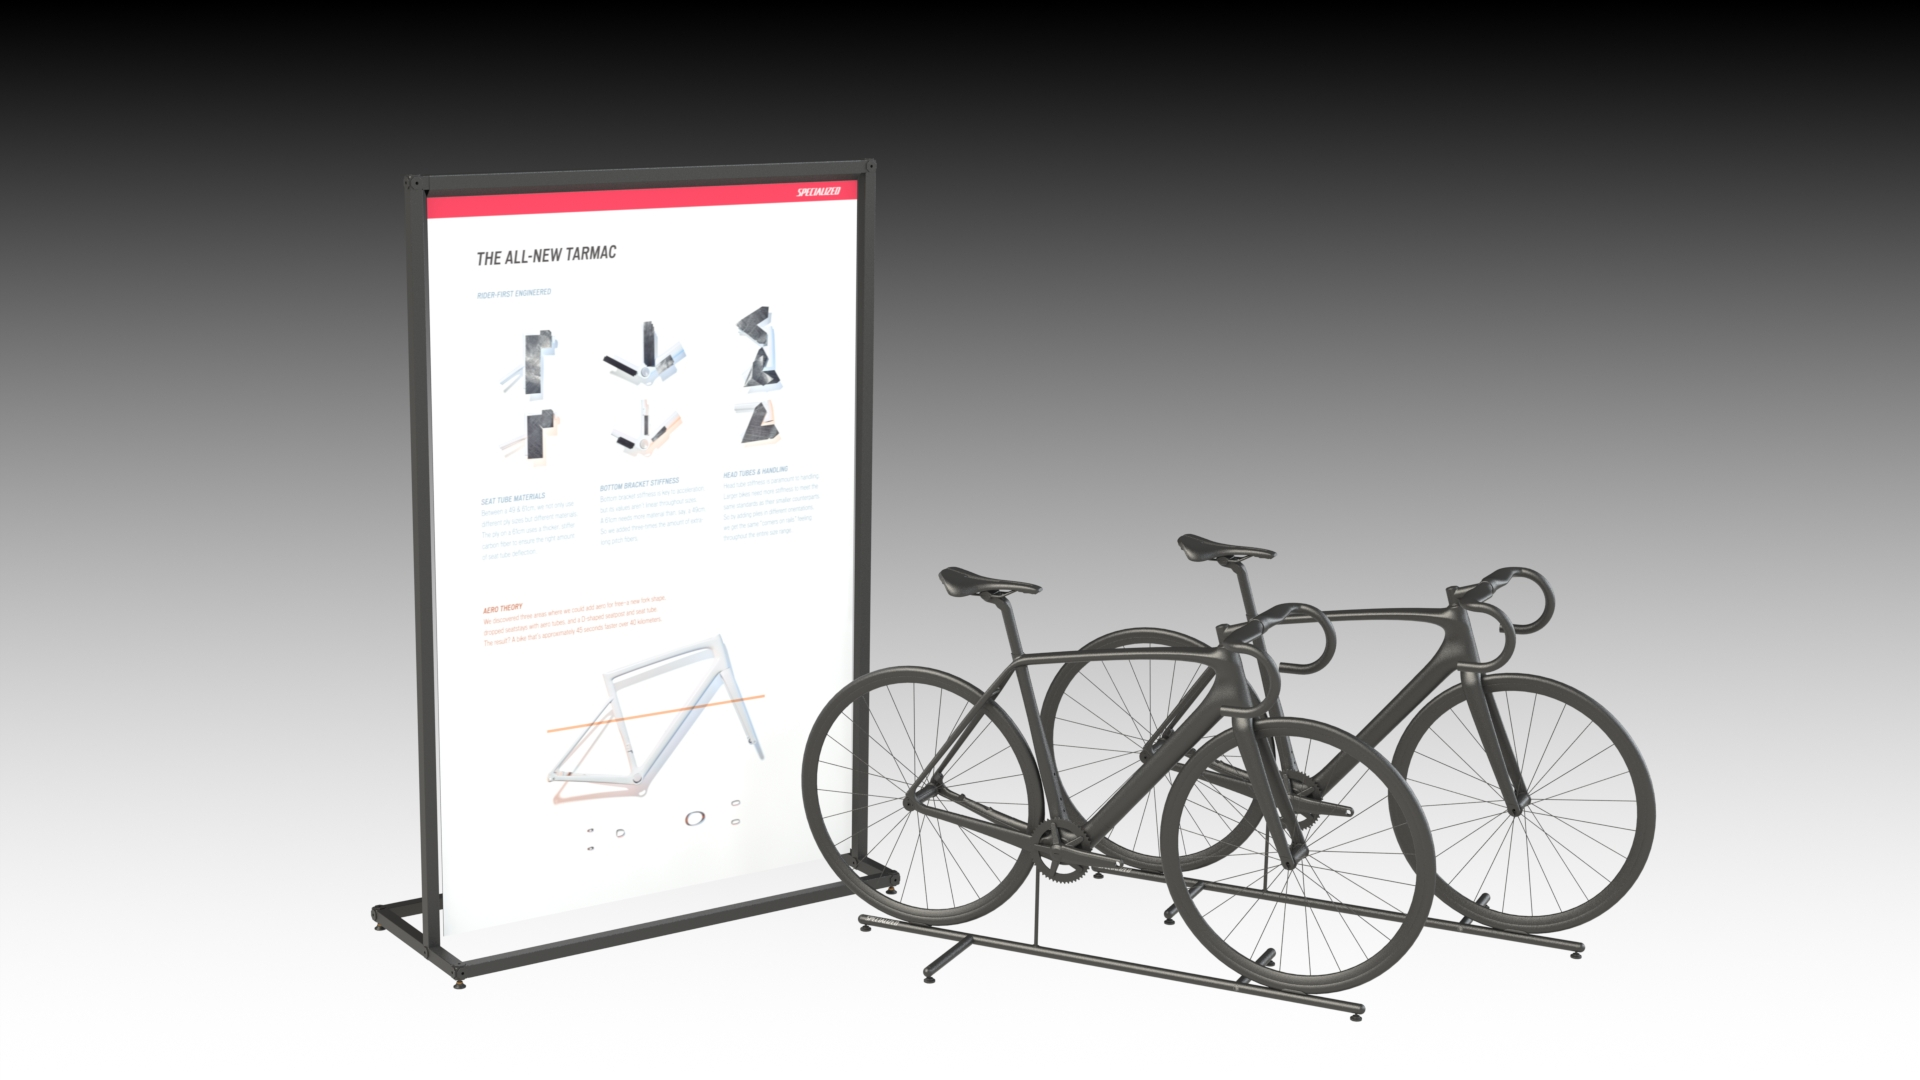 It may seem technical… but when building value on the sales floor, these fixtures act as a easy cheat sheet for salespeople to walk their clients through the unique technology of each bike.